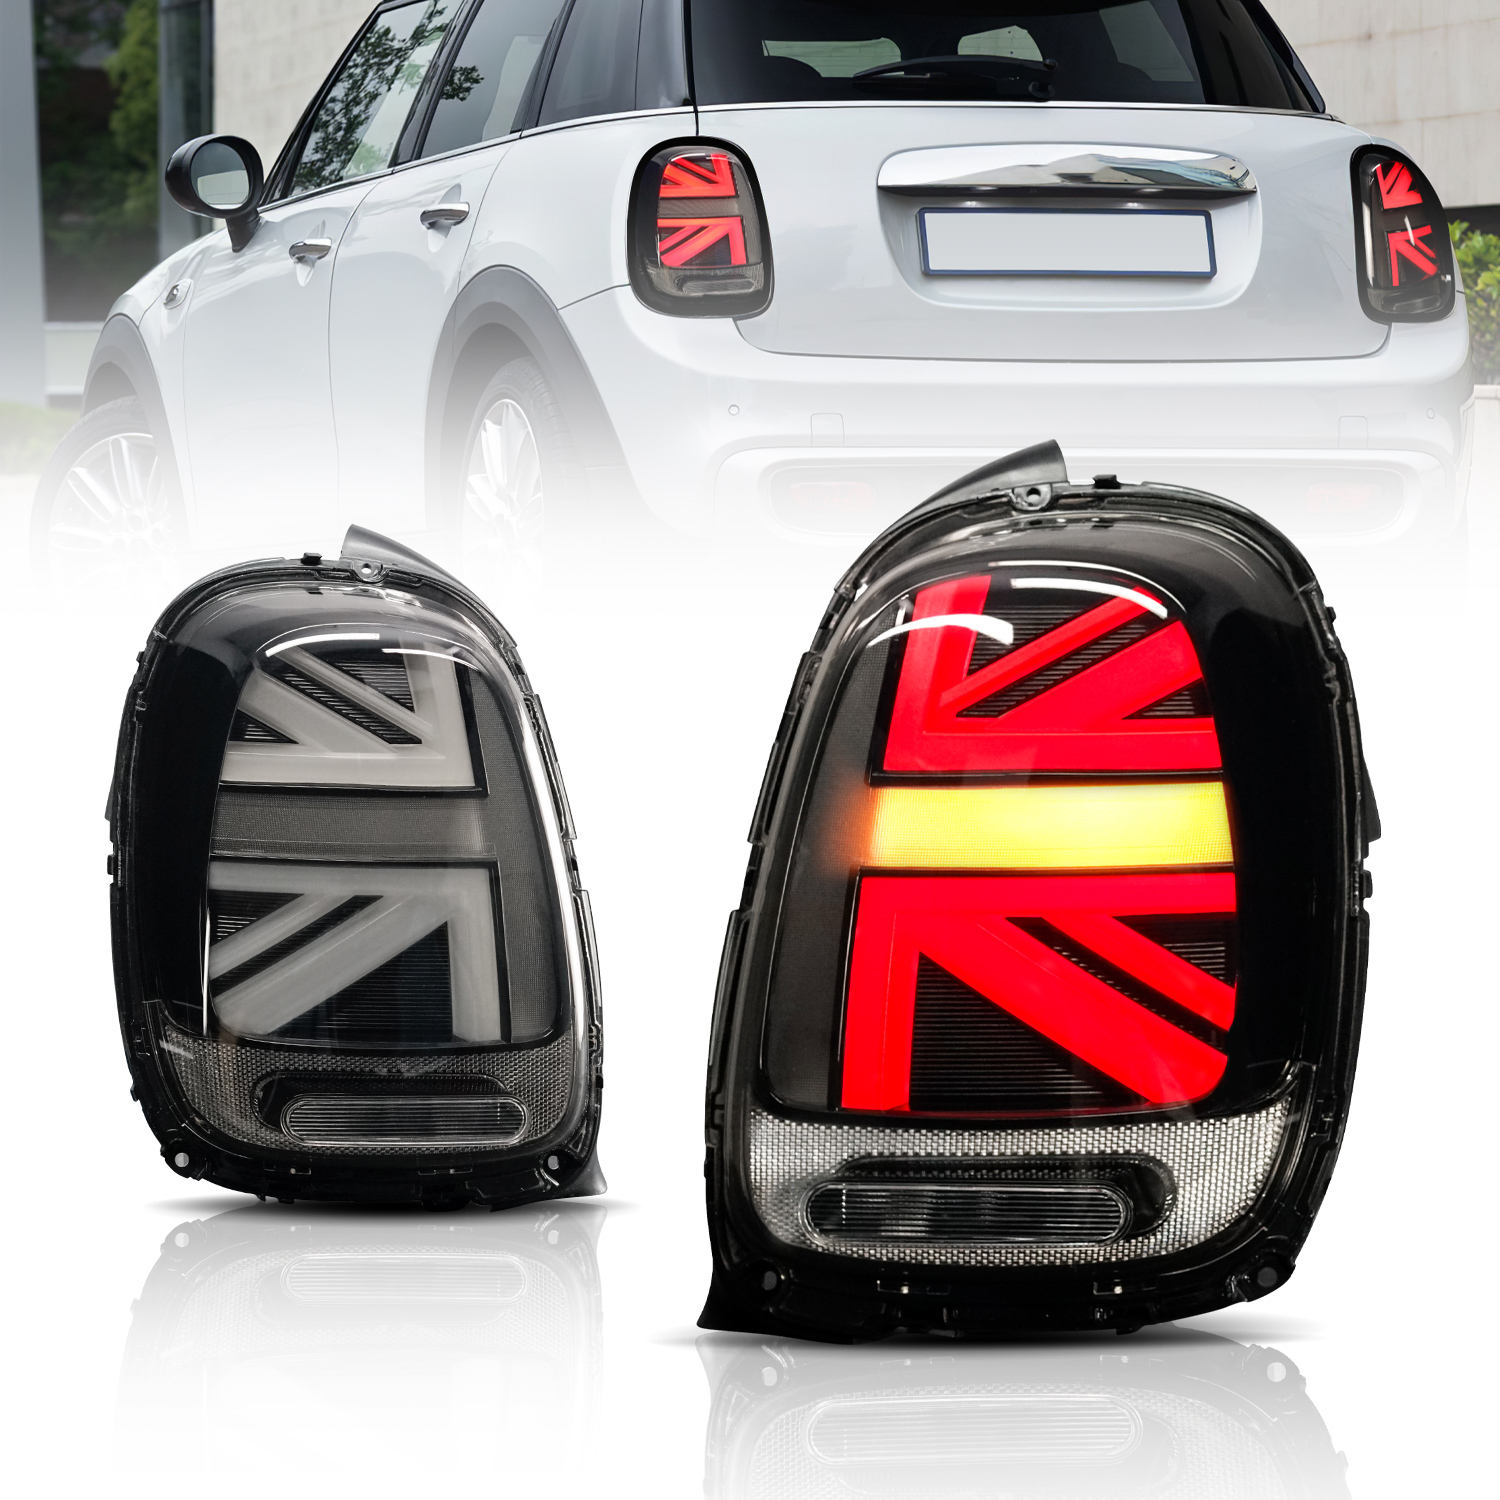 Led Tail Lights for MINI Cooper F55 F56 F57 Union Jack Rear Lights Assembly 2014-UP for John Cooper works forBMW MINI Rear Lamp